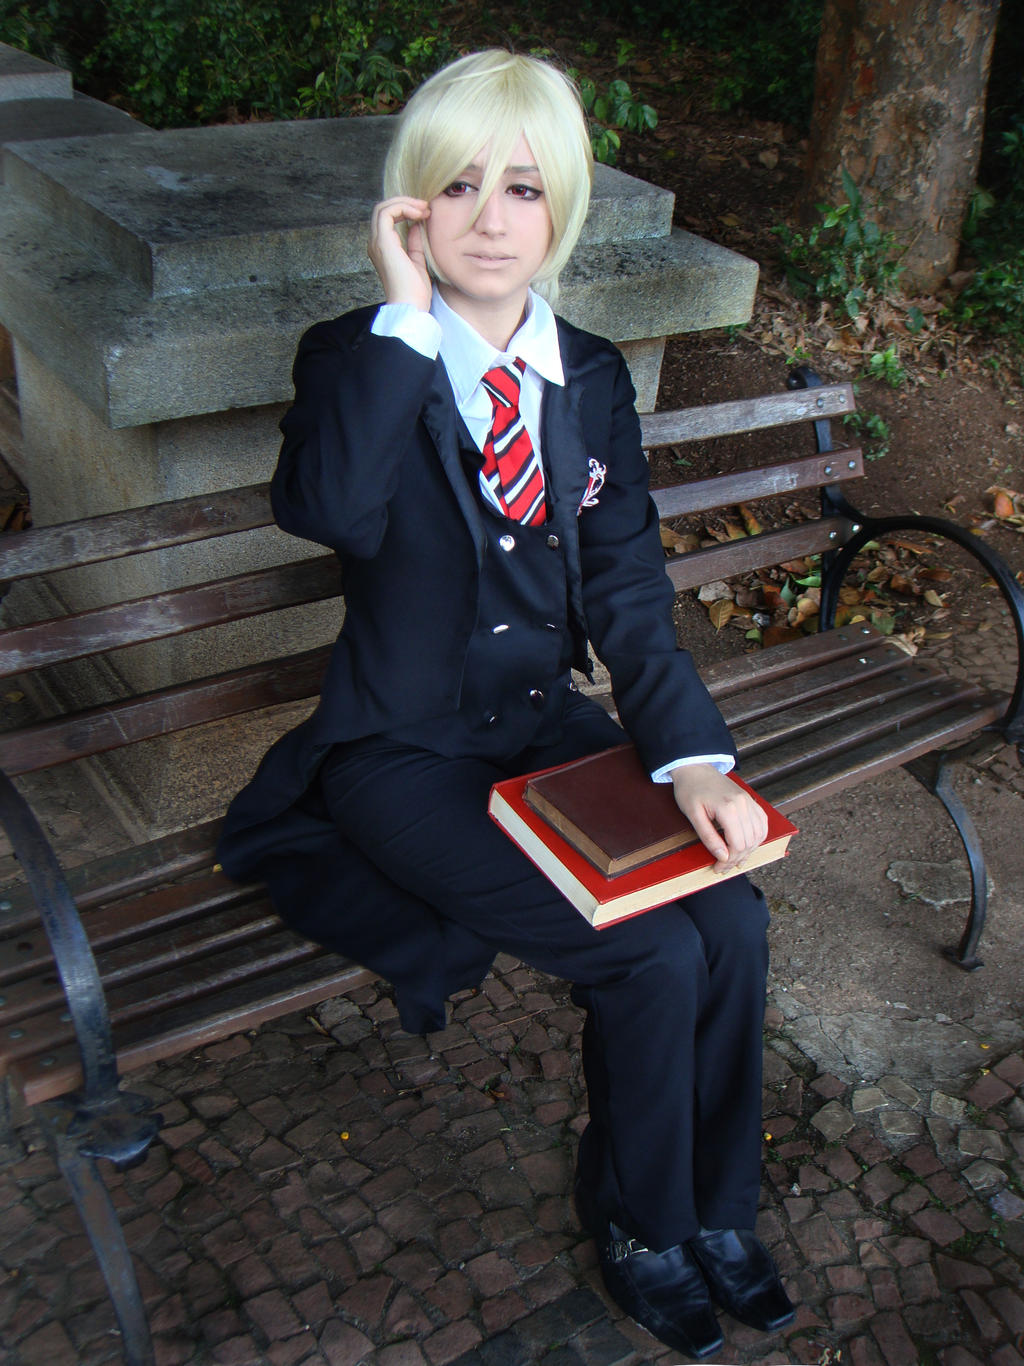 Weston College's Loneliest Student by dysama